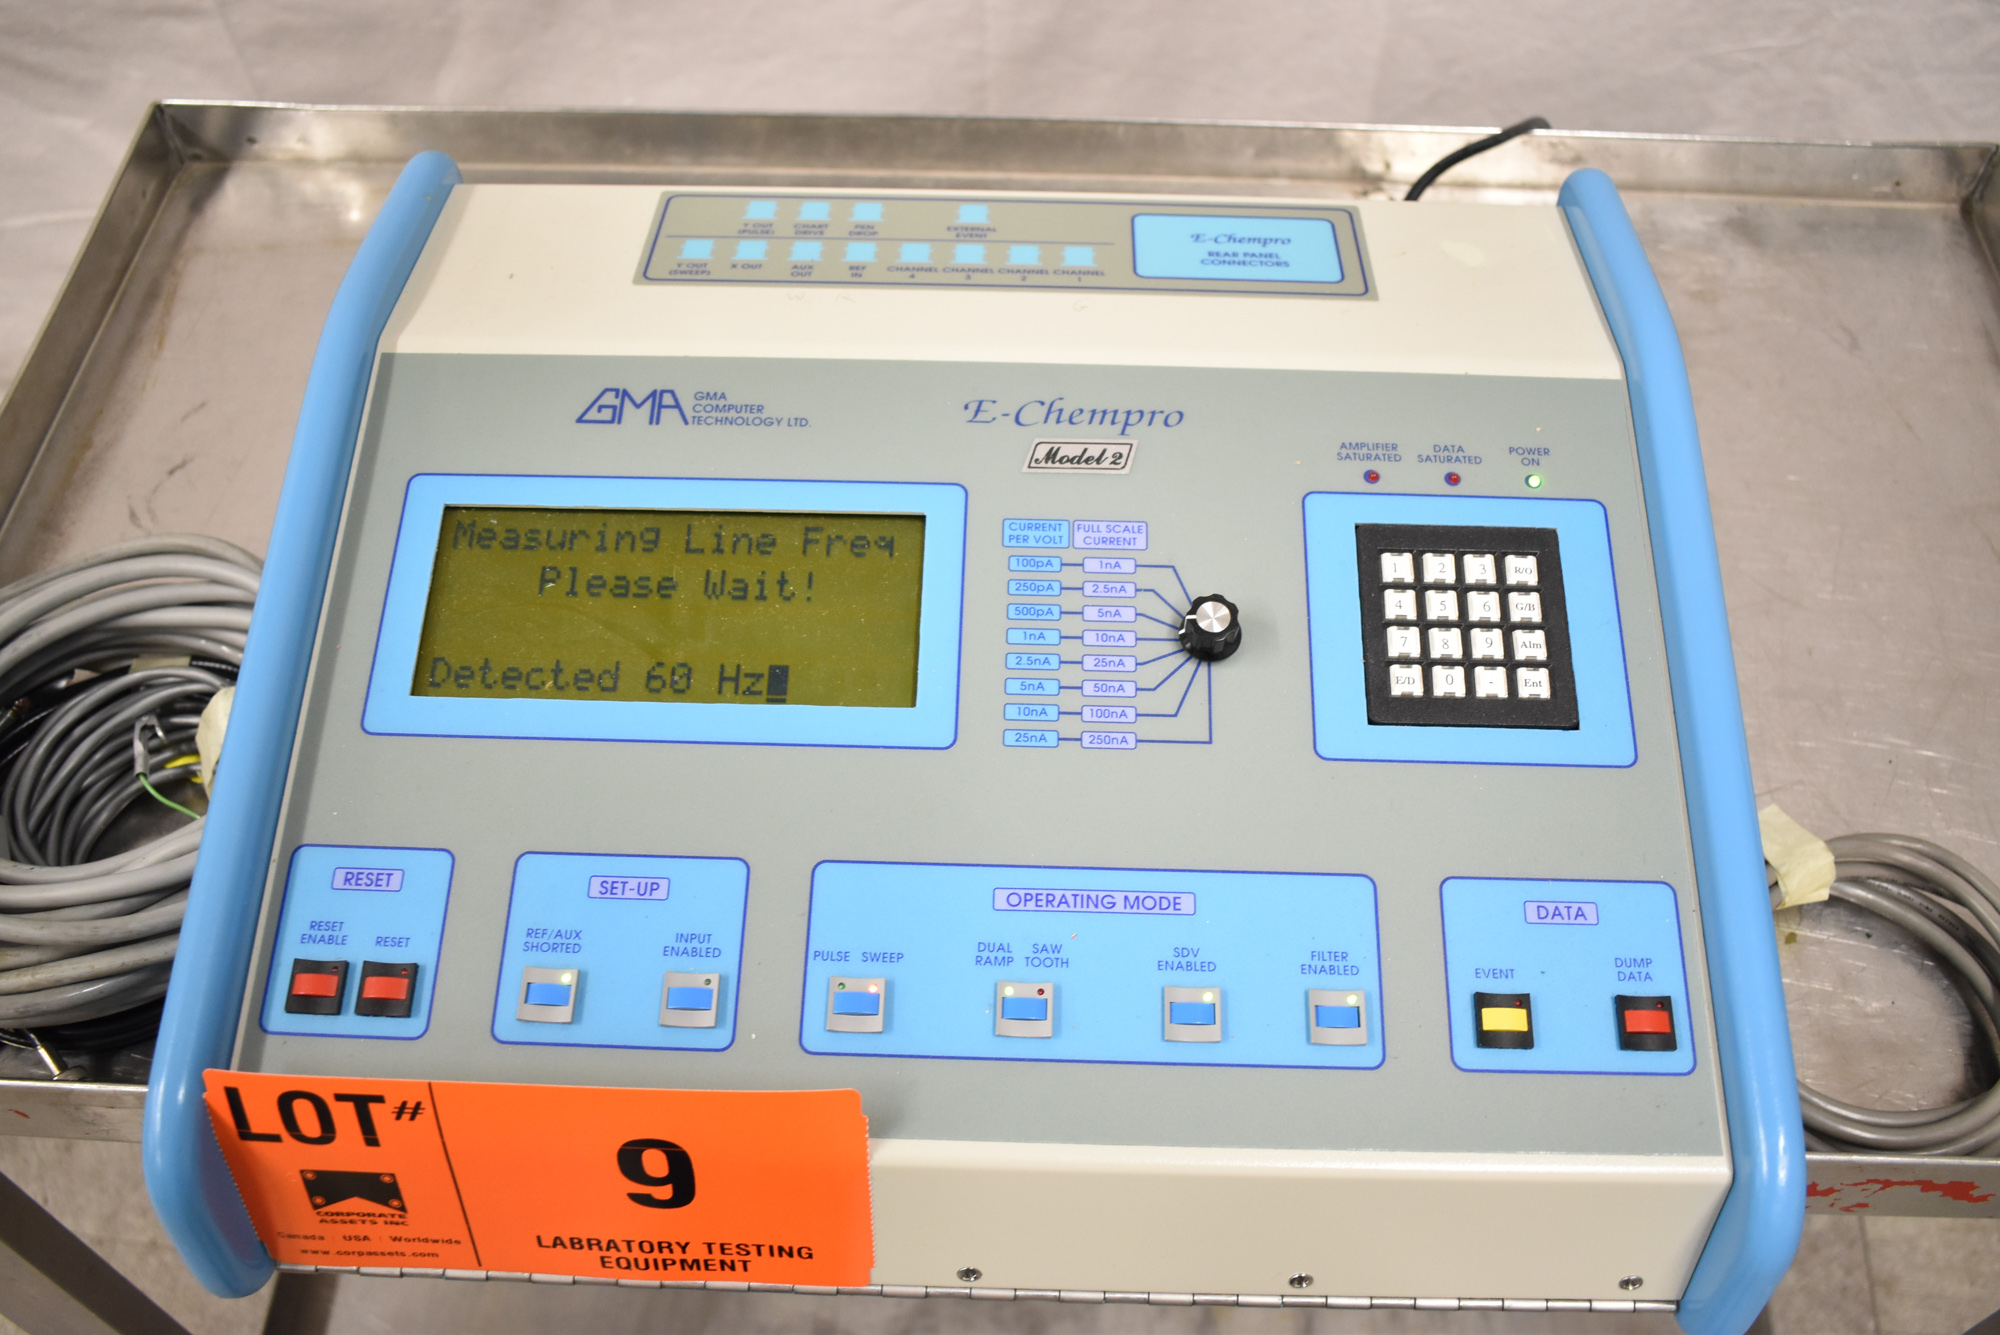 GMA E-CHEMPRO 2/110/60 HIGH SPEED SAMPLER WITH ATEN UC-232A USB TO SERIAL CONVERTER, S/N: 0026 [$ - Image 3 of 5